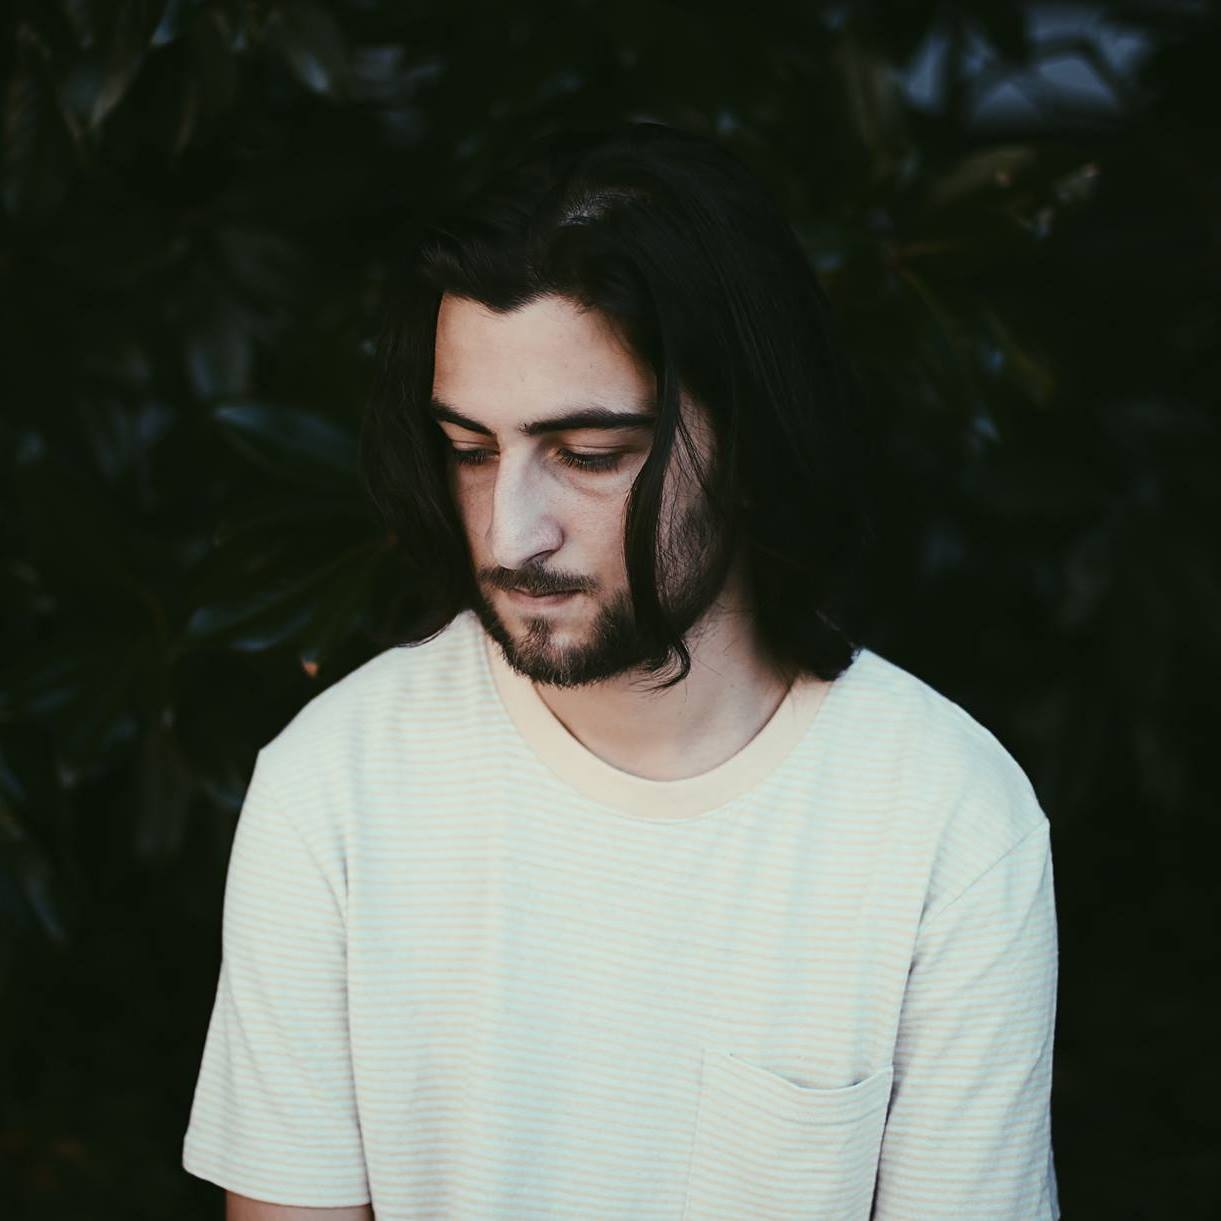 """""""'Come Down' is about an experience I had helping a new friend through a moment of intense anxiety. I didn't know this person well, and we were isolated for some time together, which made for a revealing and very human experience.""""  #NoahKahan #UraniumWaves"""